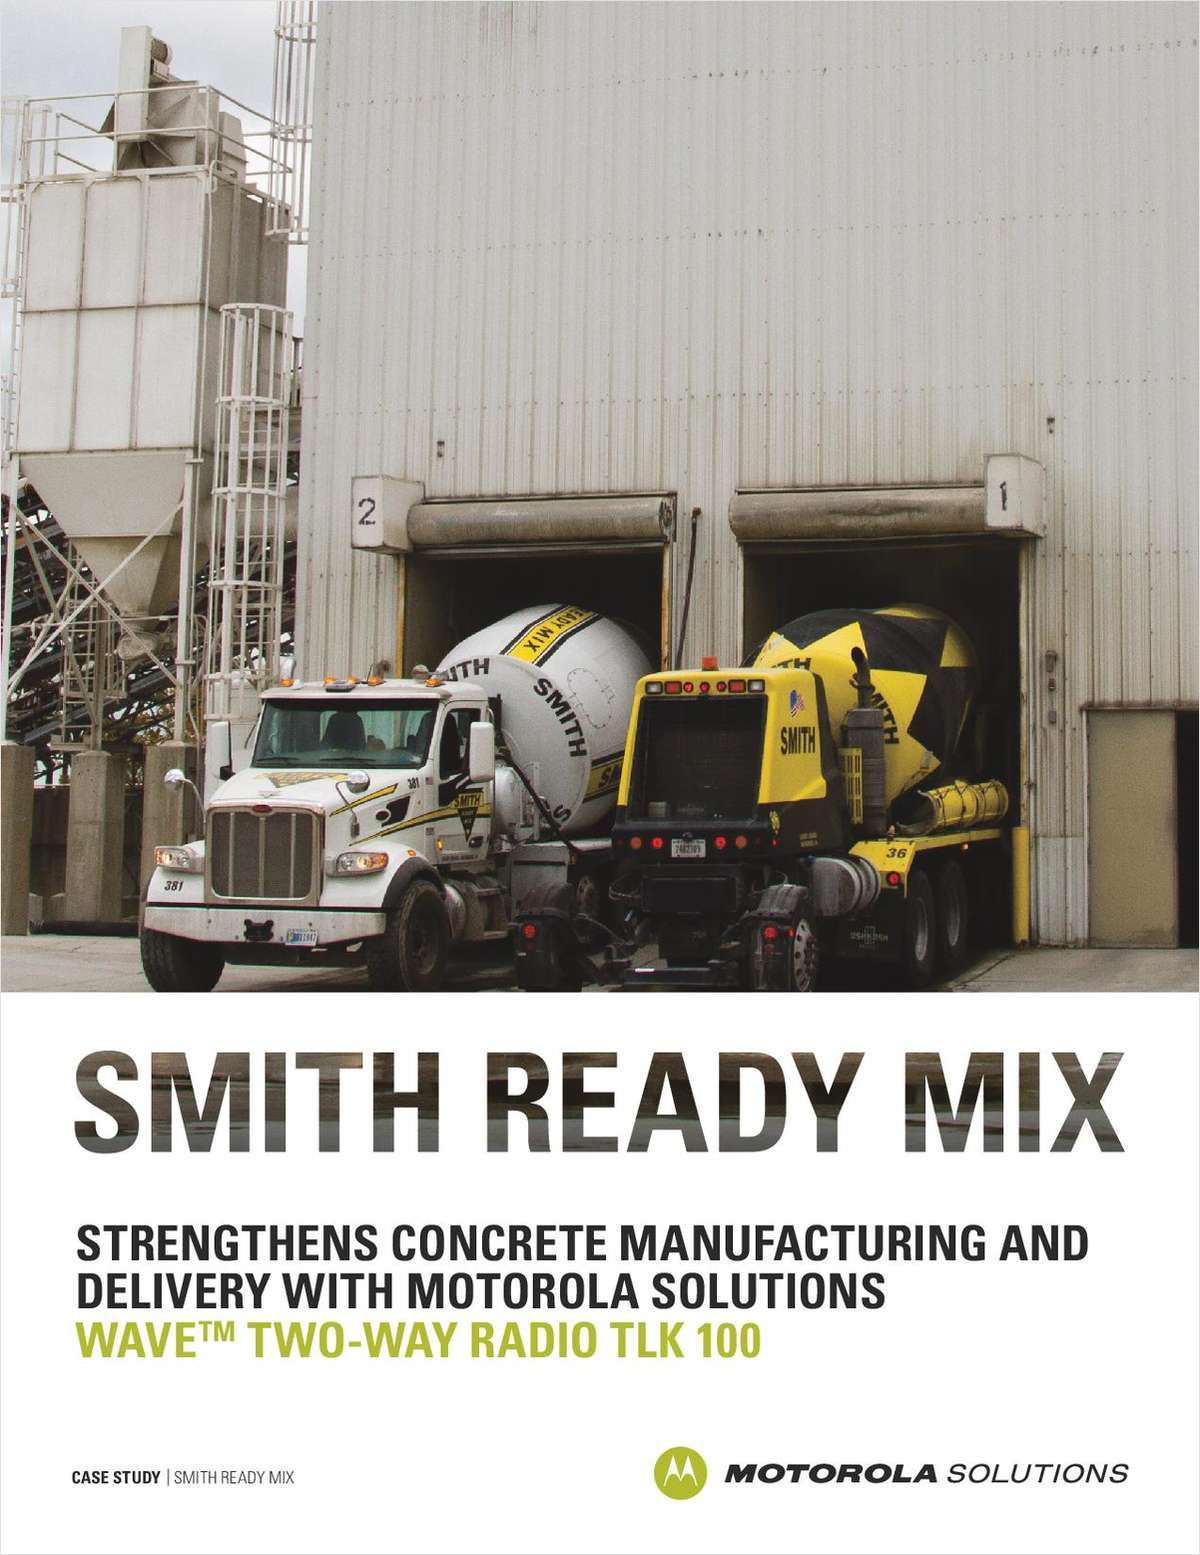 Smith Ready Mix Strengthens Concrete Manufacturing and Delivery with Motorola Solutions WAVE™ Two-Way Radio TLK 100